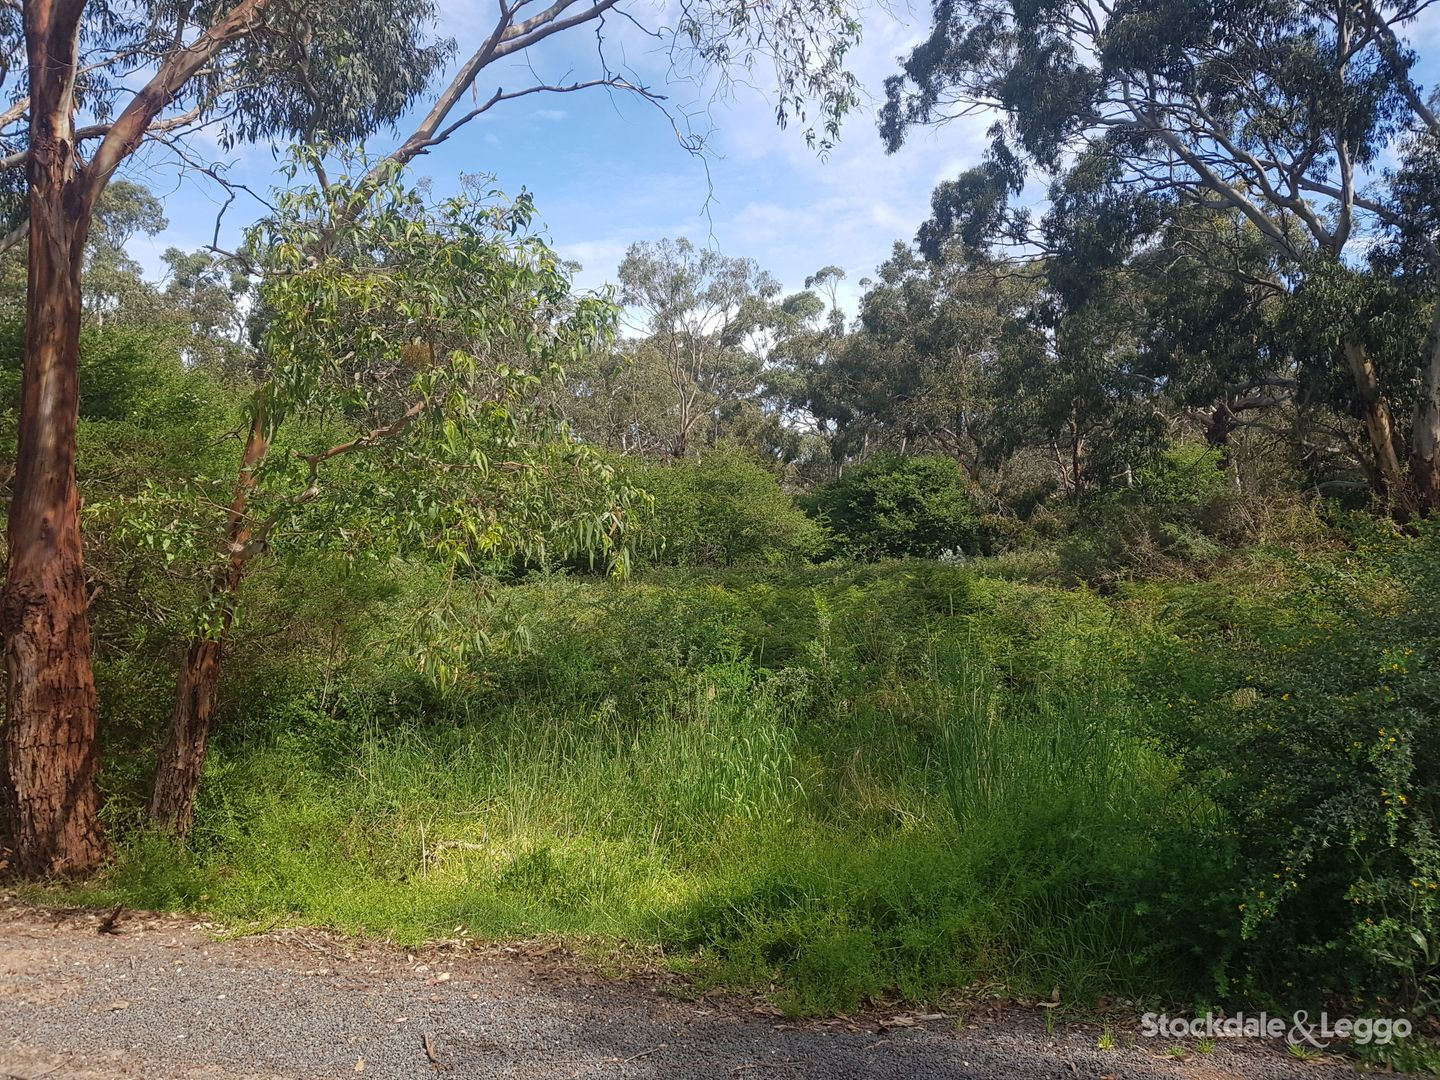 Lot 1 Sec 23 SHADY LANE, Mailors Flat VIC 3275, Image 0